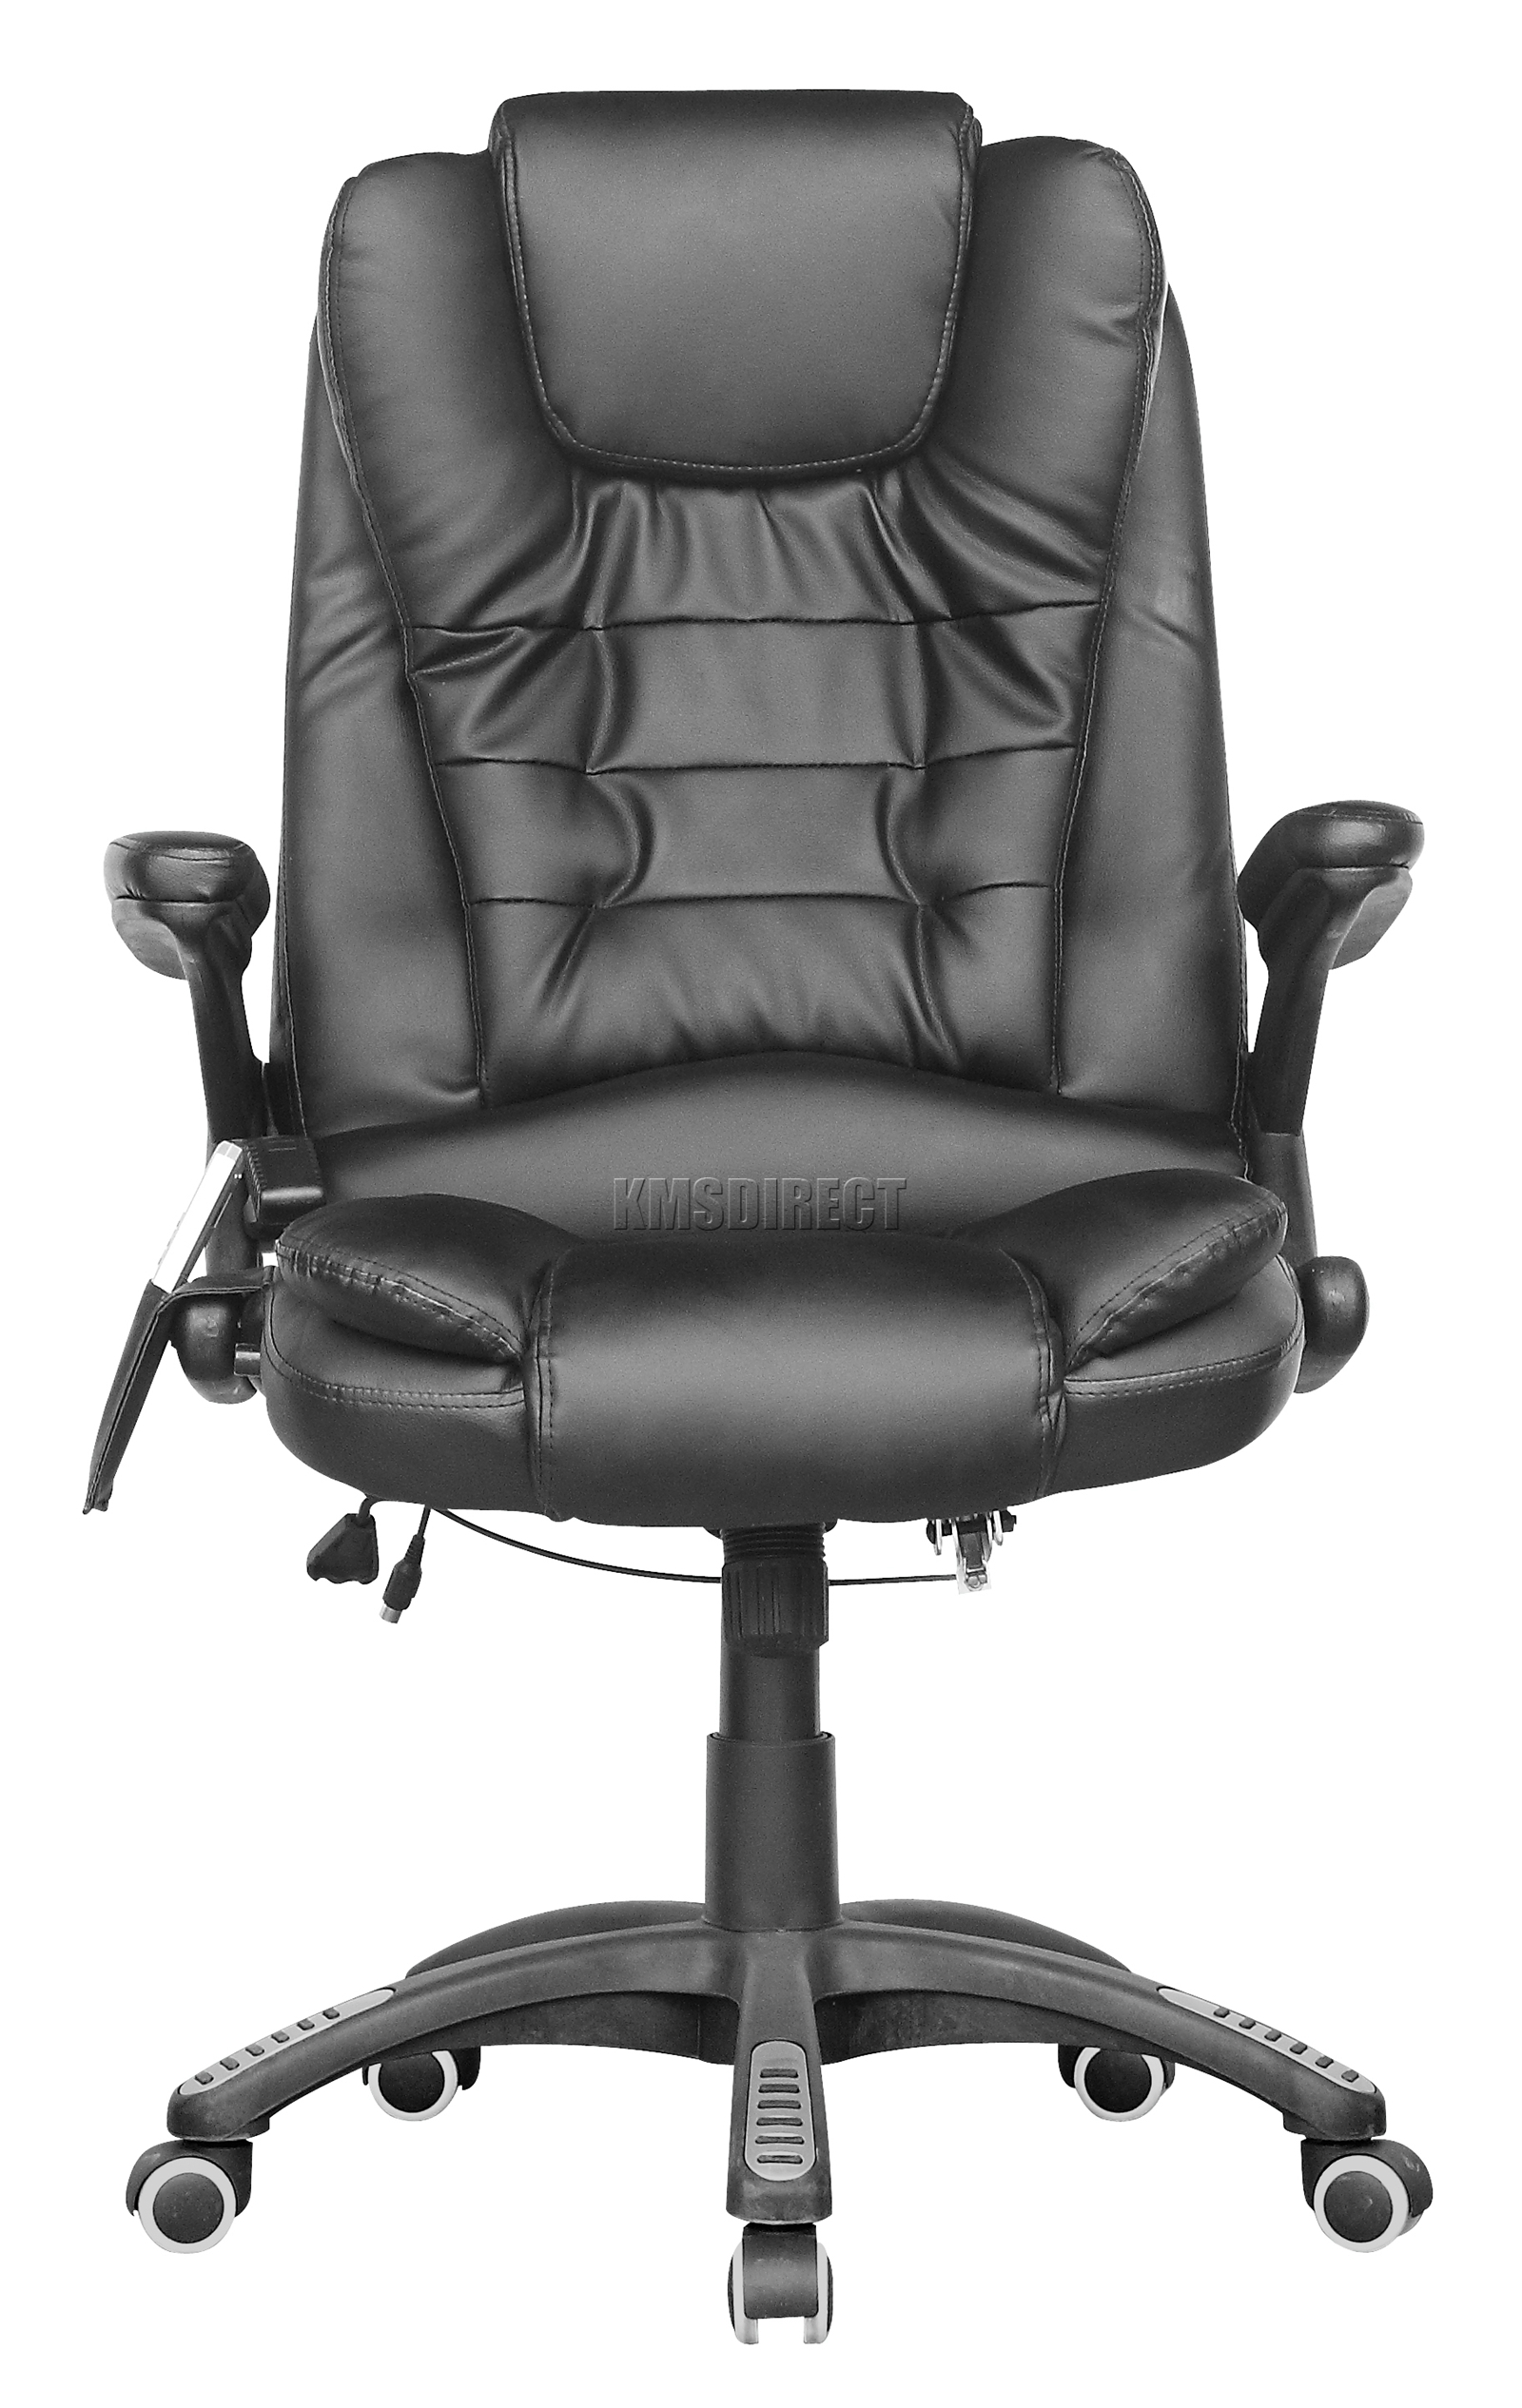 Luxury Office Chair Foxhunter 6 Point Massage Office Computer Chair Luxury